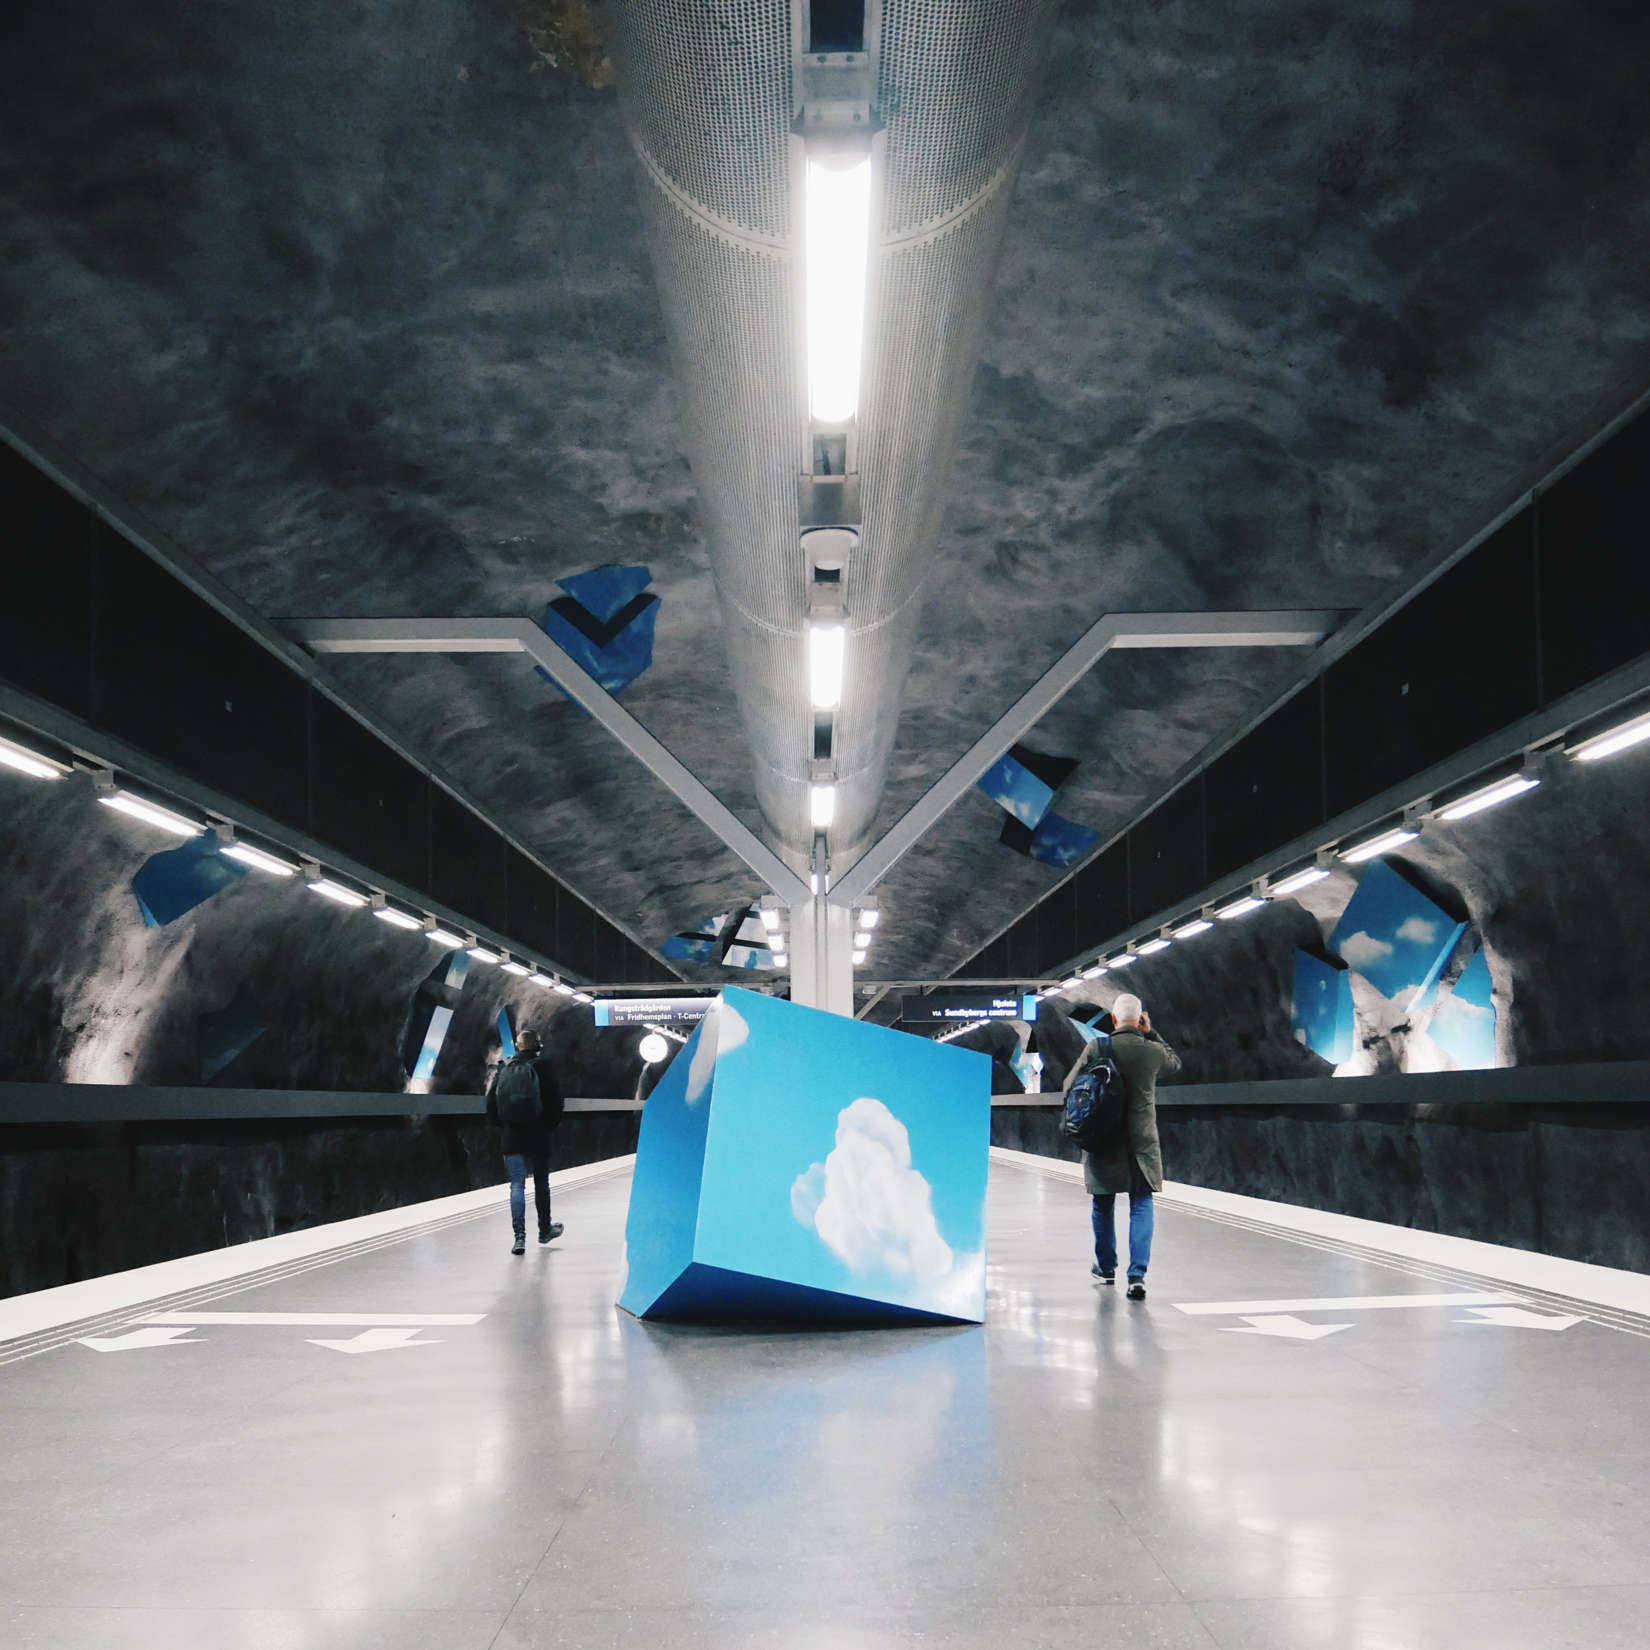 Stockholm subway art:GLOBAL MOBILITY: A WISH LIST FOR TALENTS MOVING TO SWEDEN